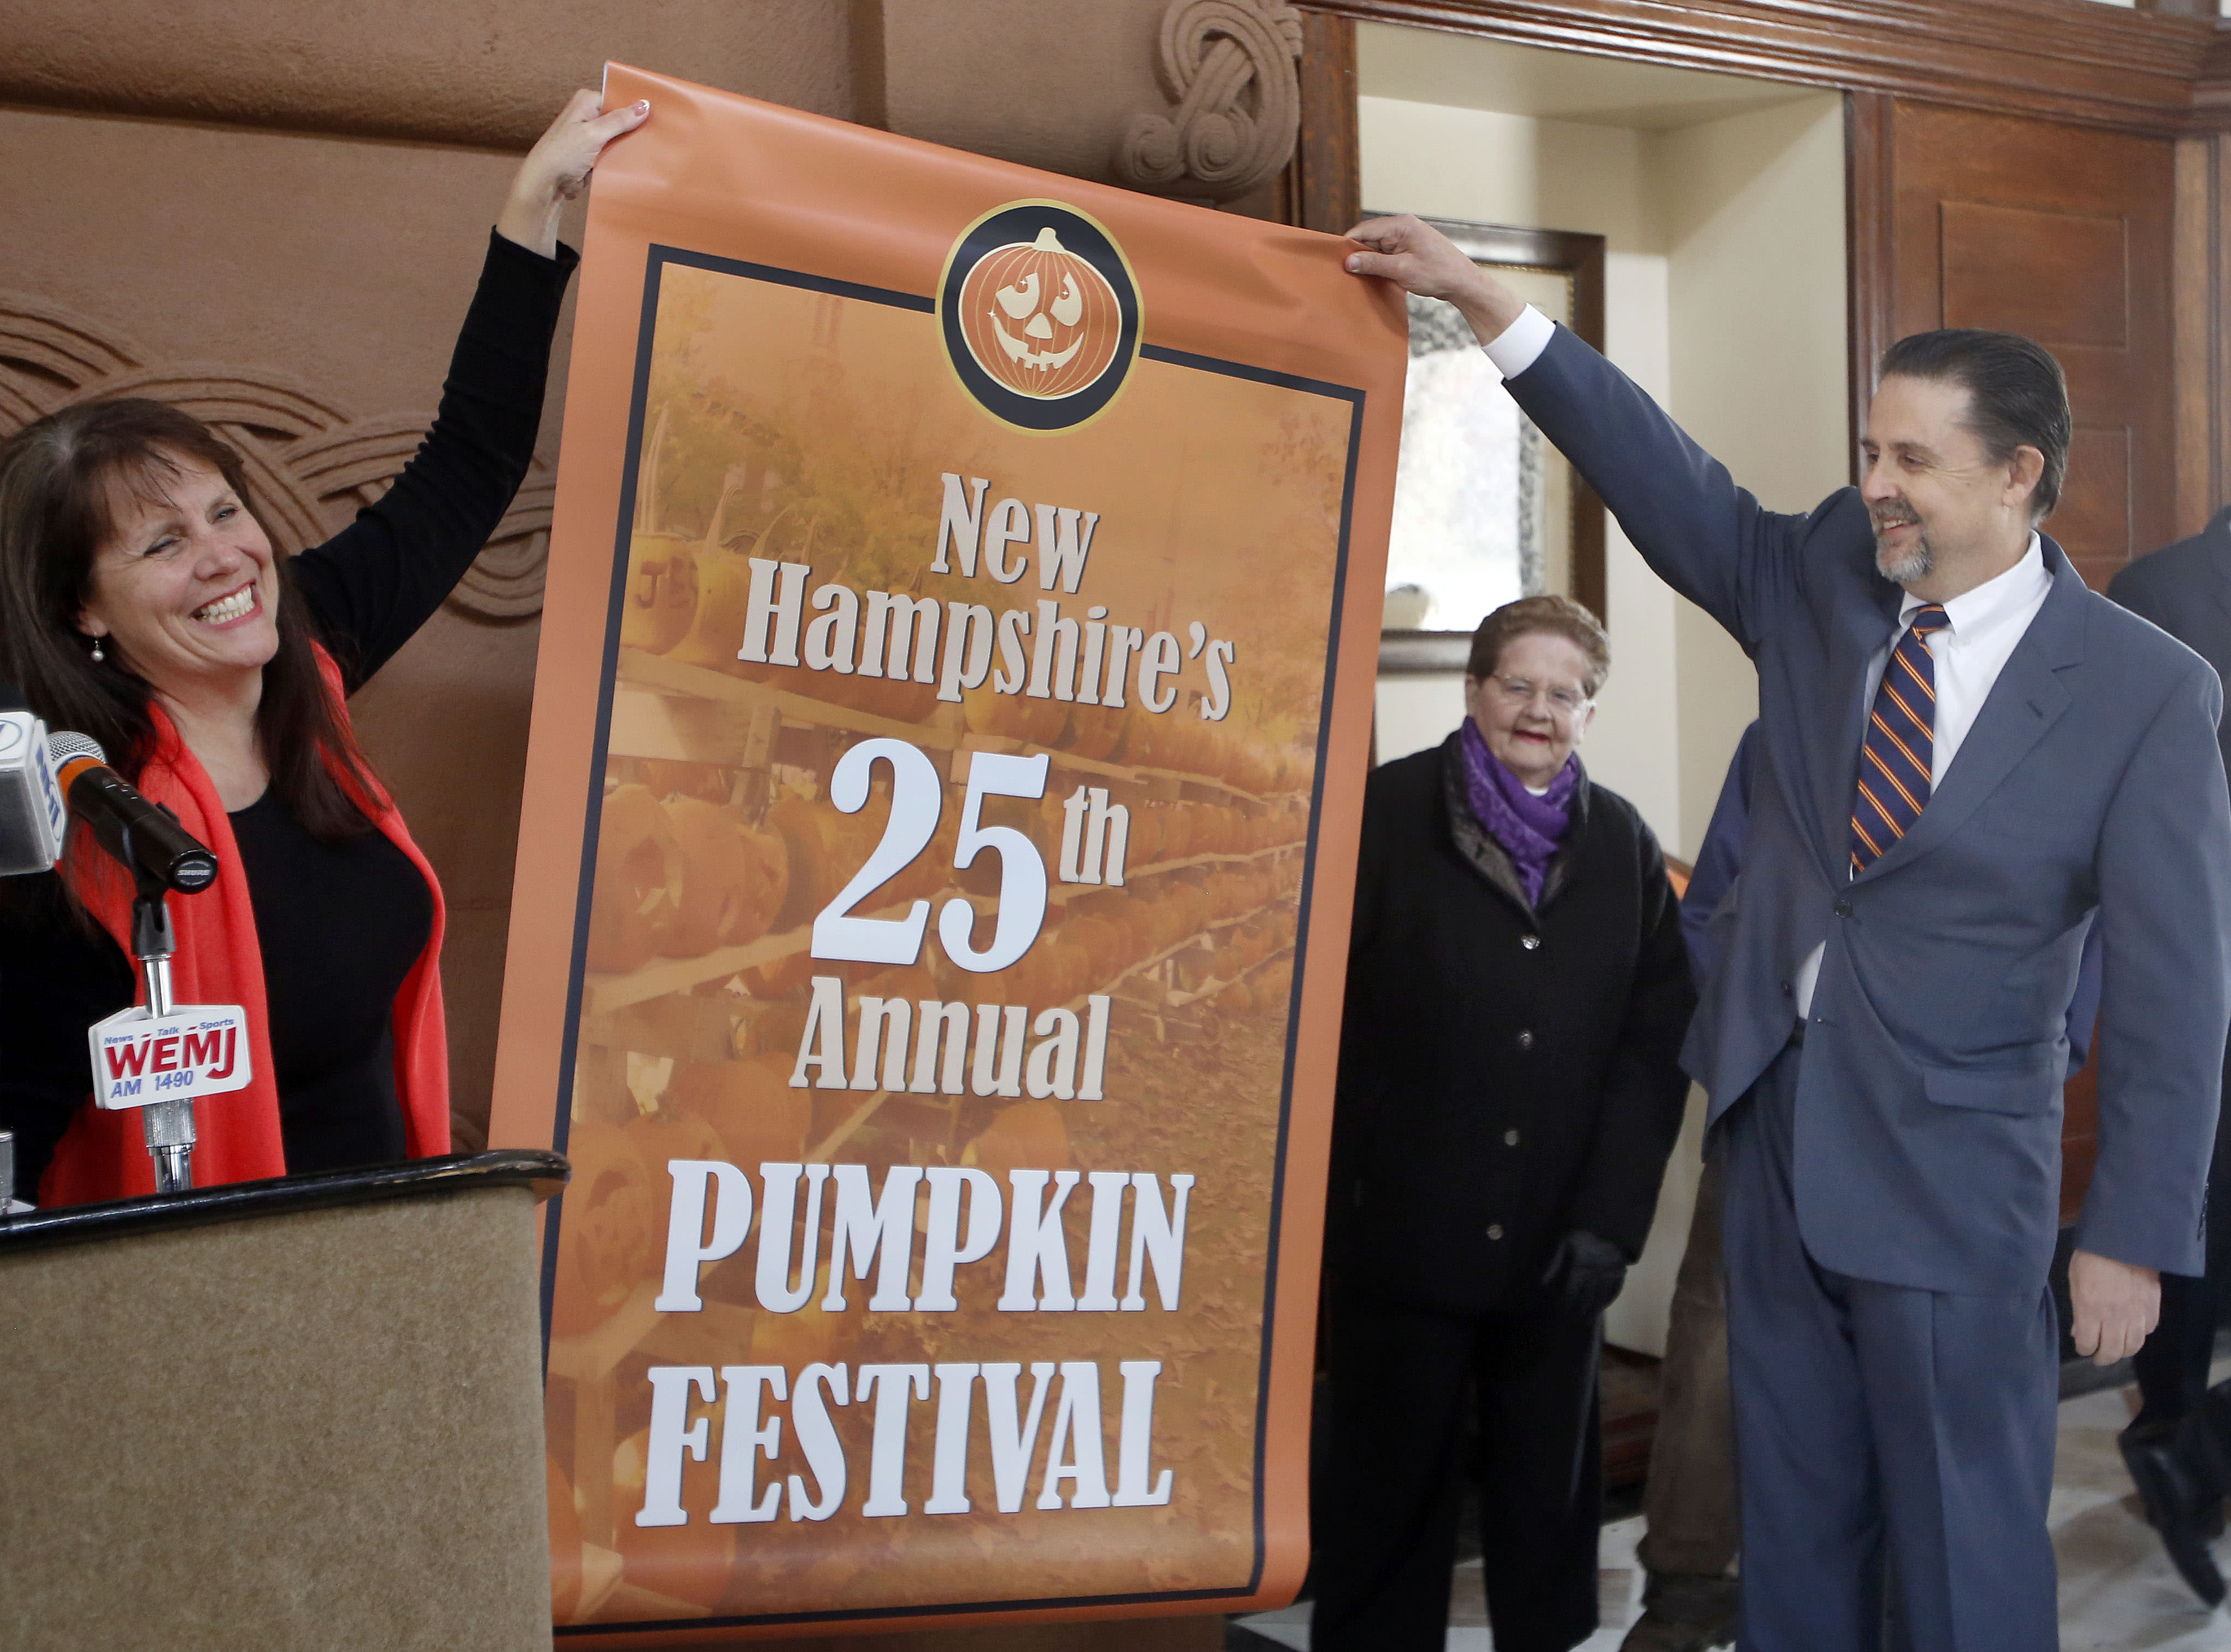 After violence last year, new city to host pumpkin festival